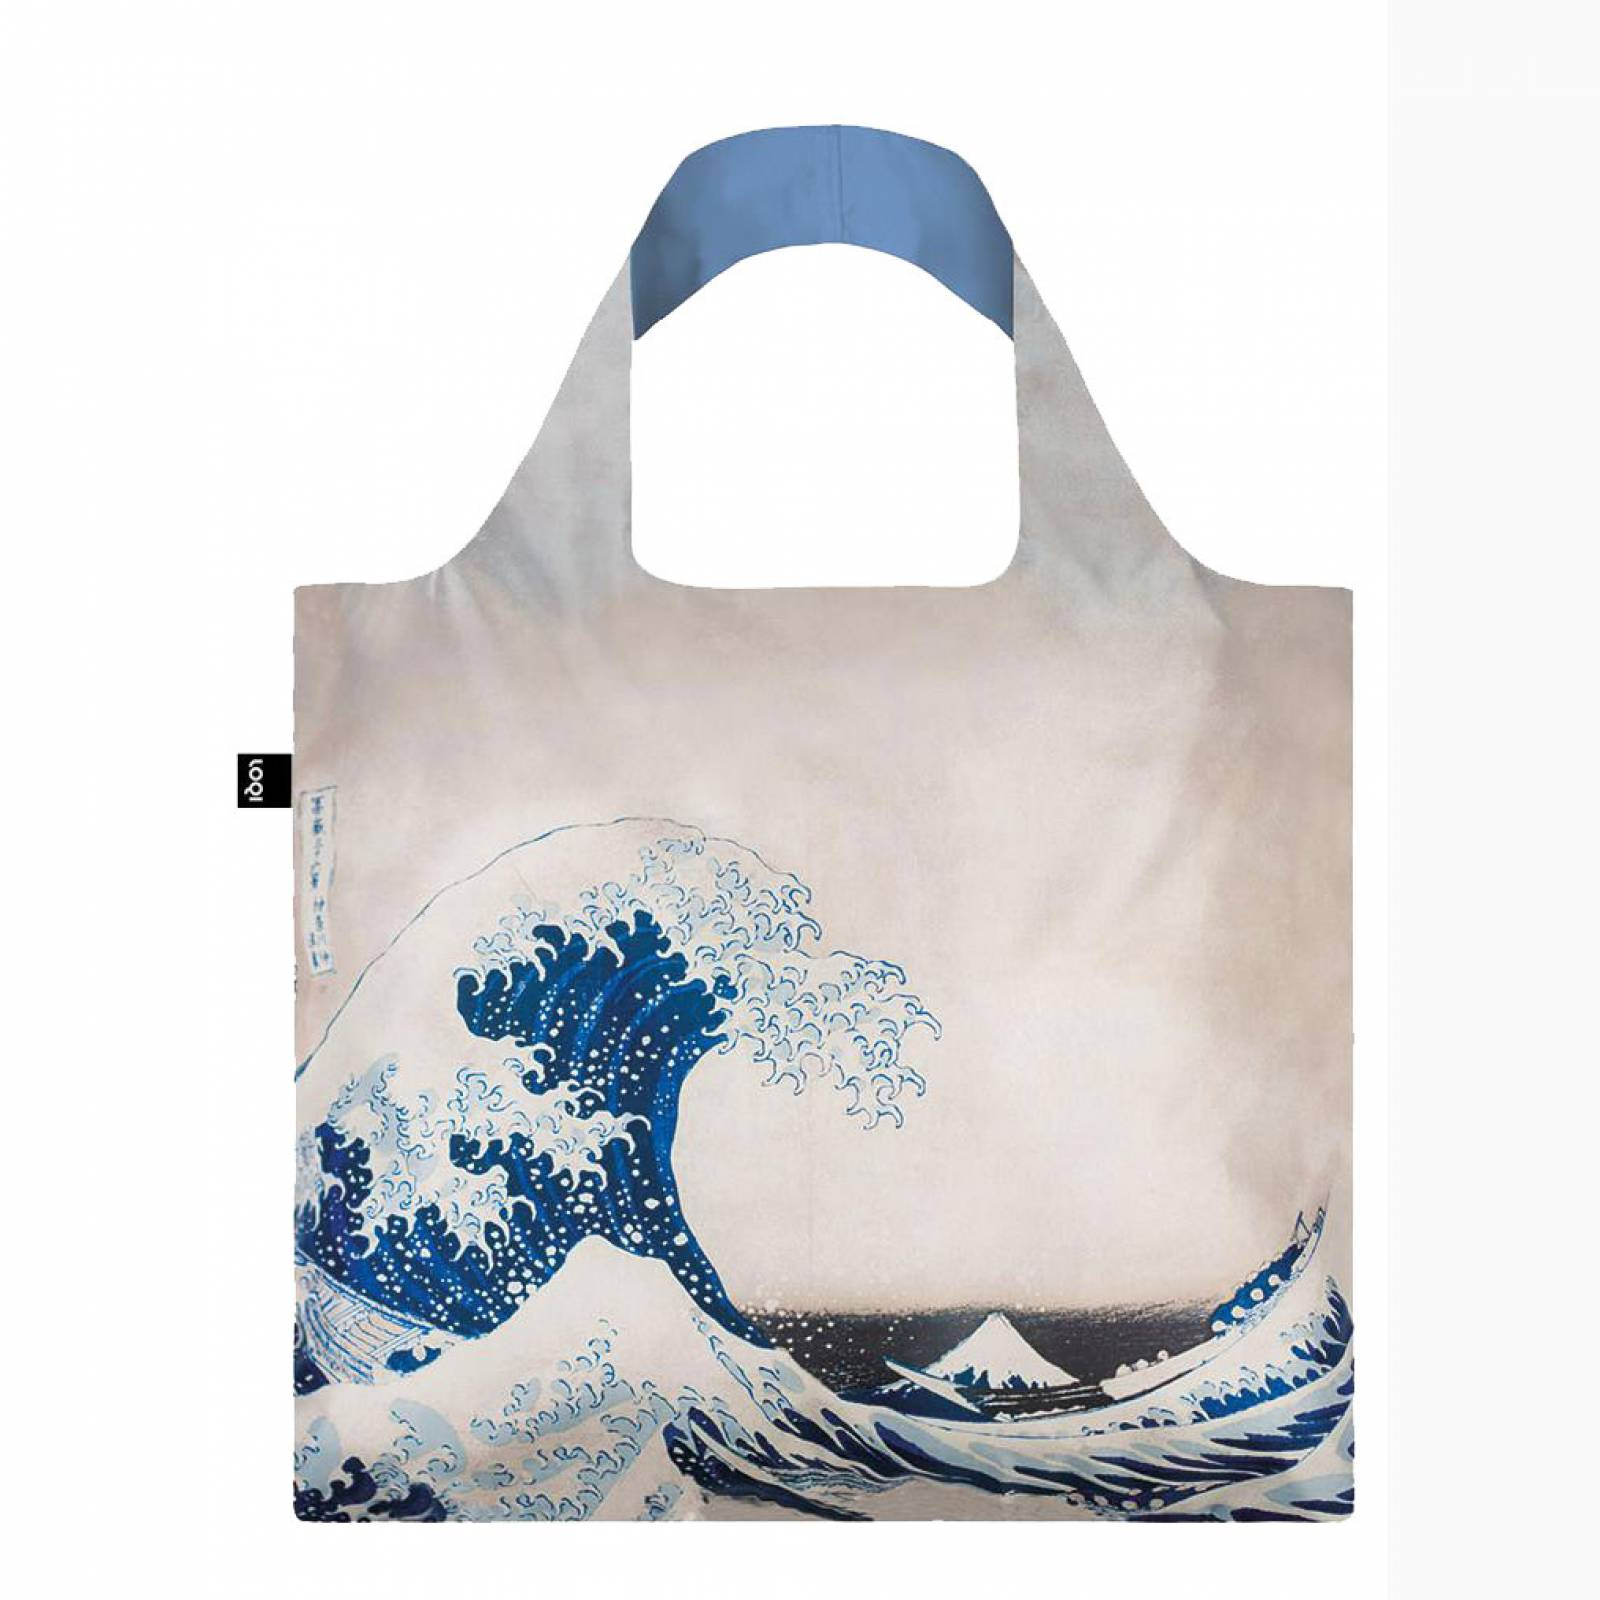 The Great Wave - Reusable Tote Bag With Pouch